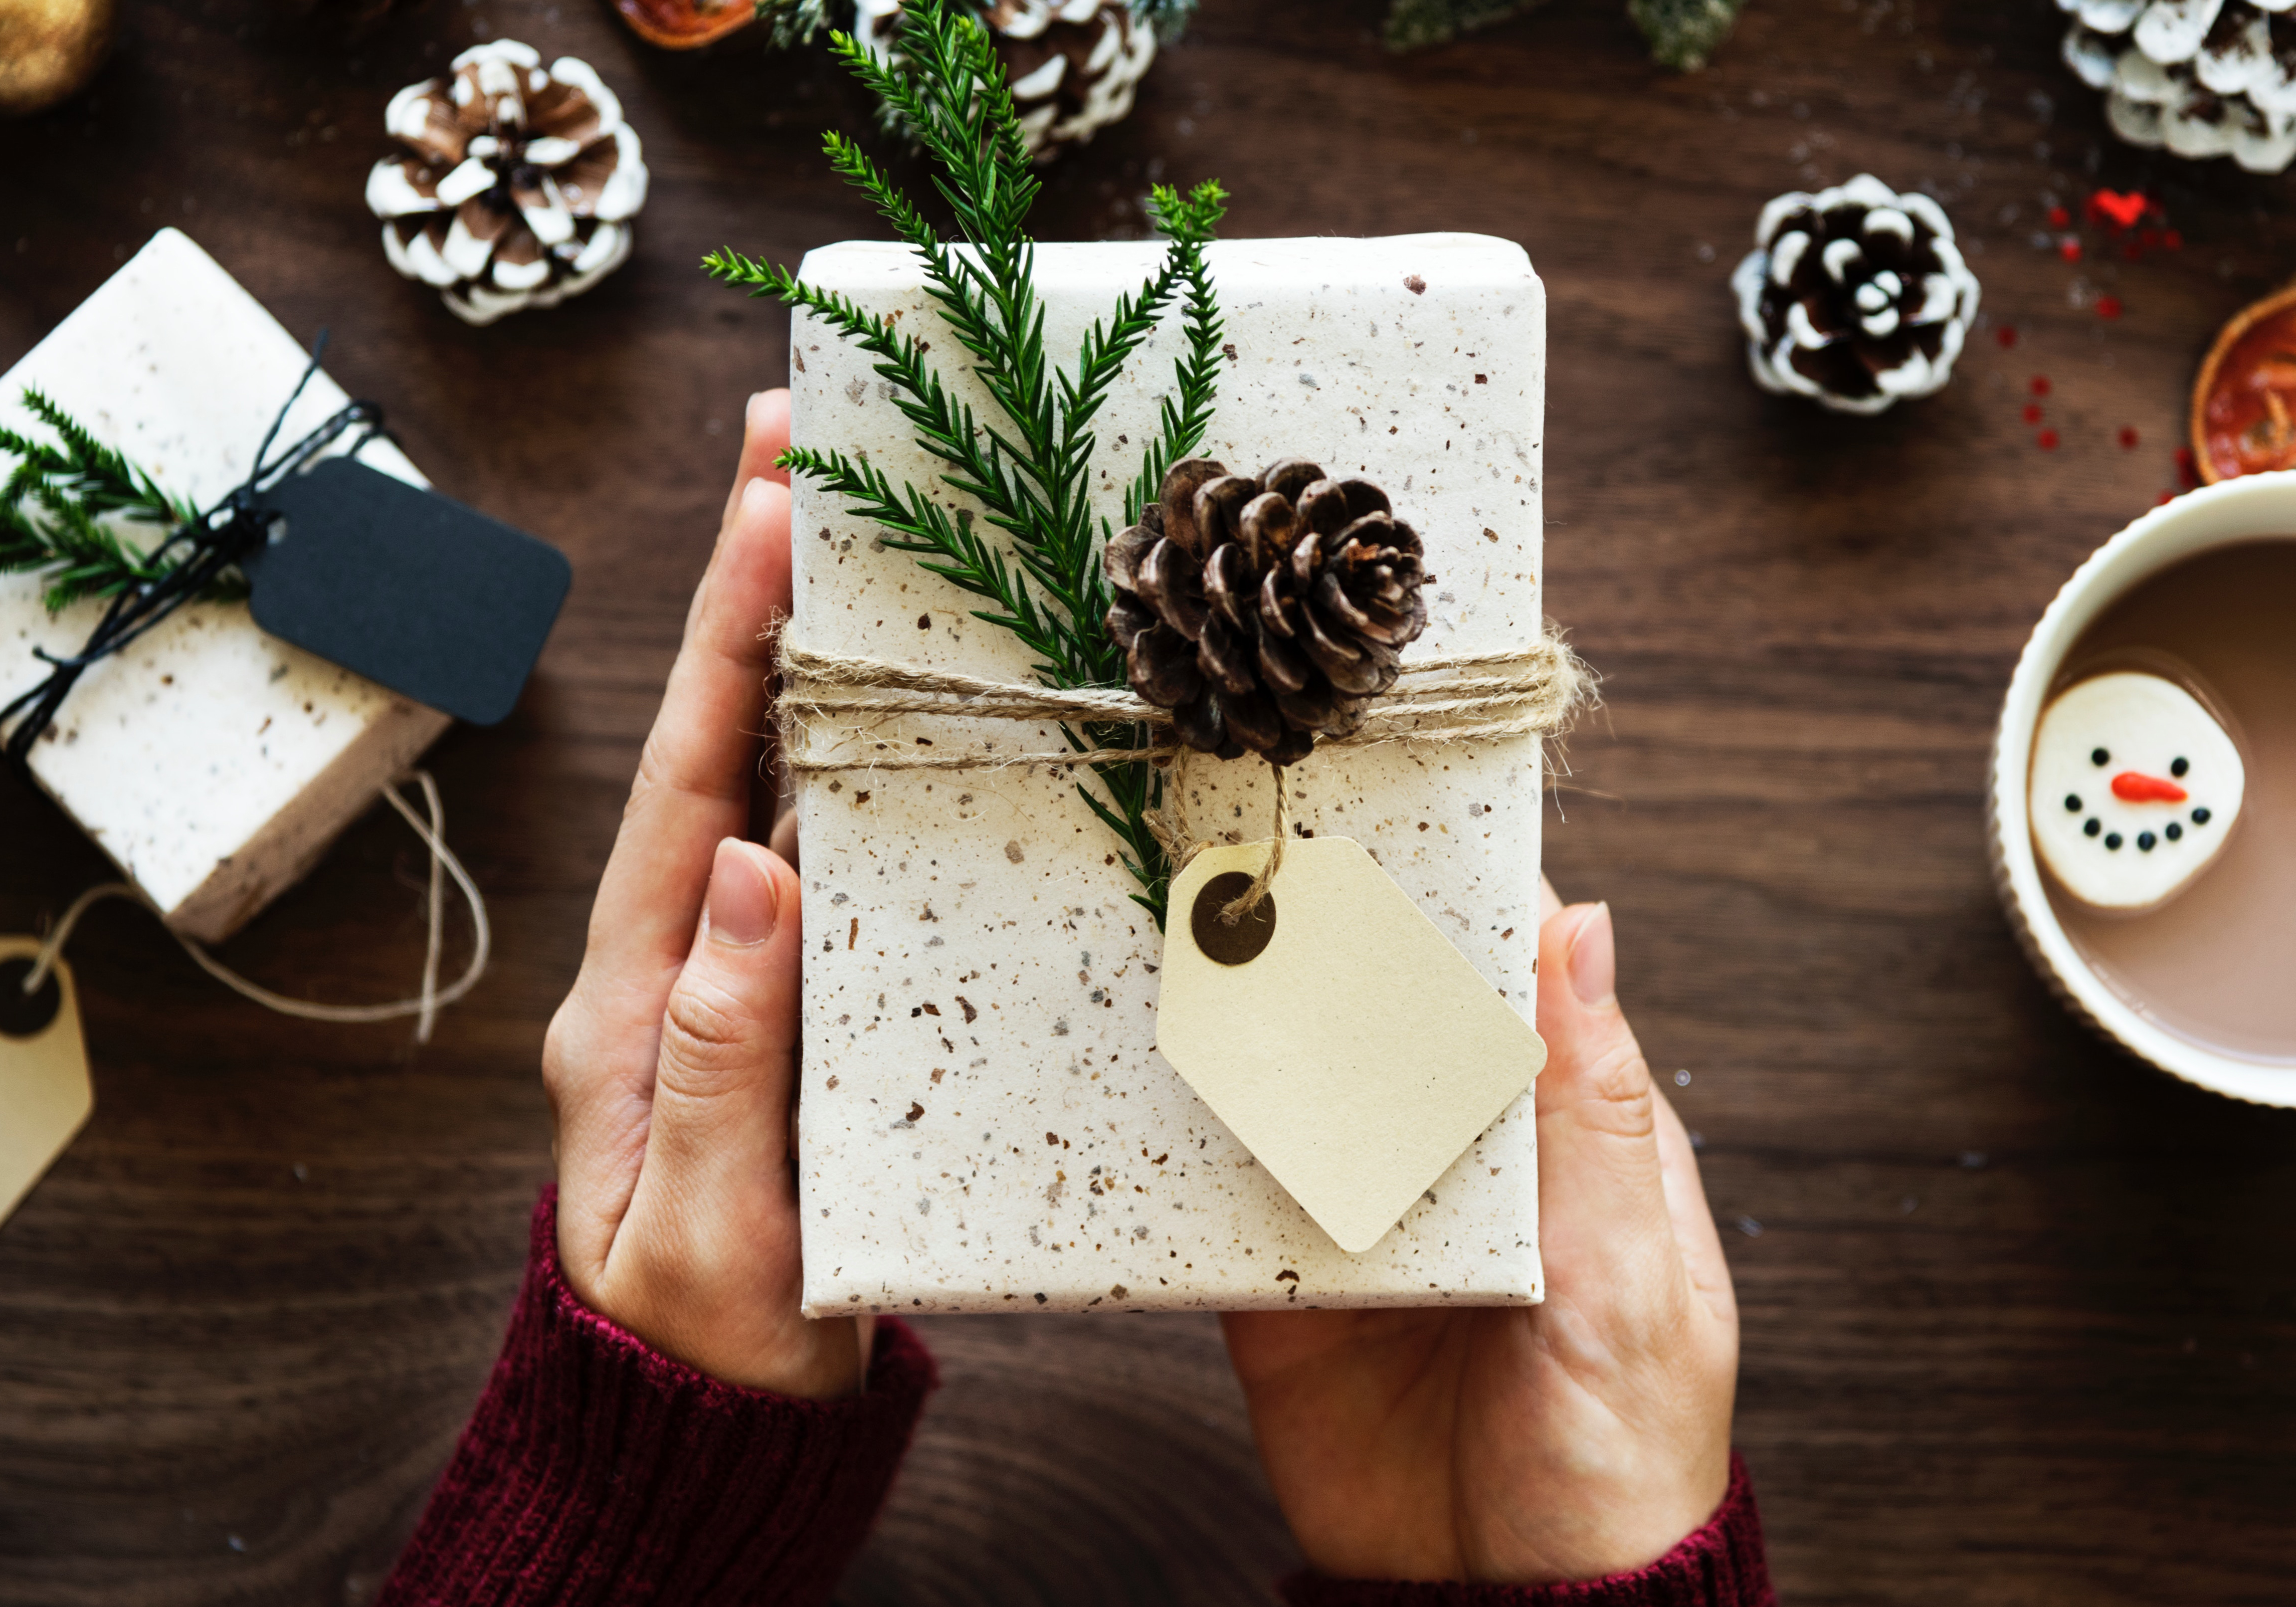 10 Holiday To-Dos and How to Tackle Them with Cheer